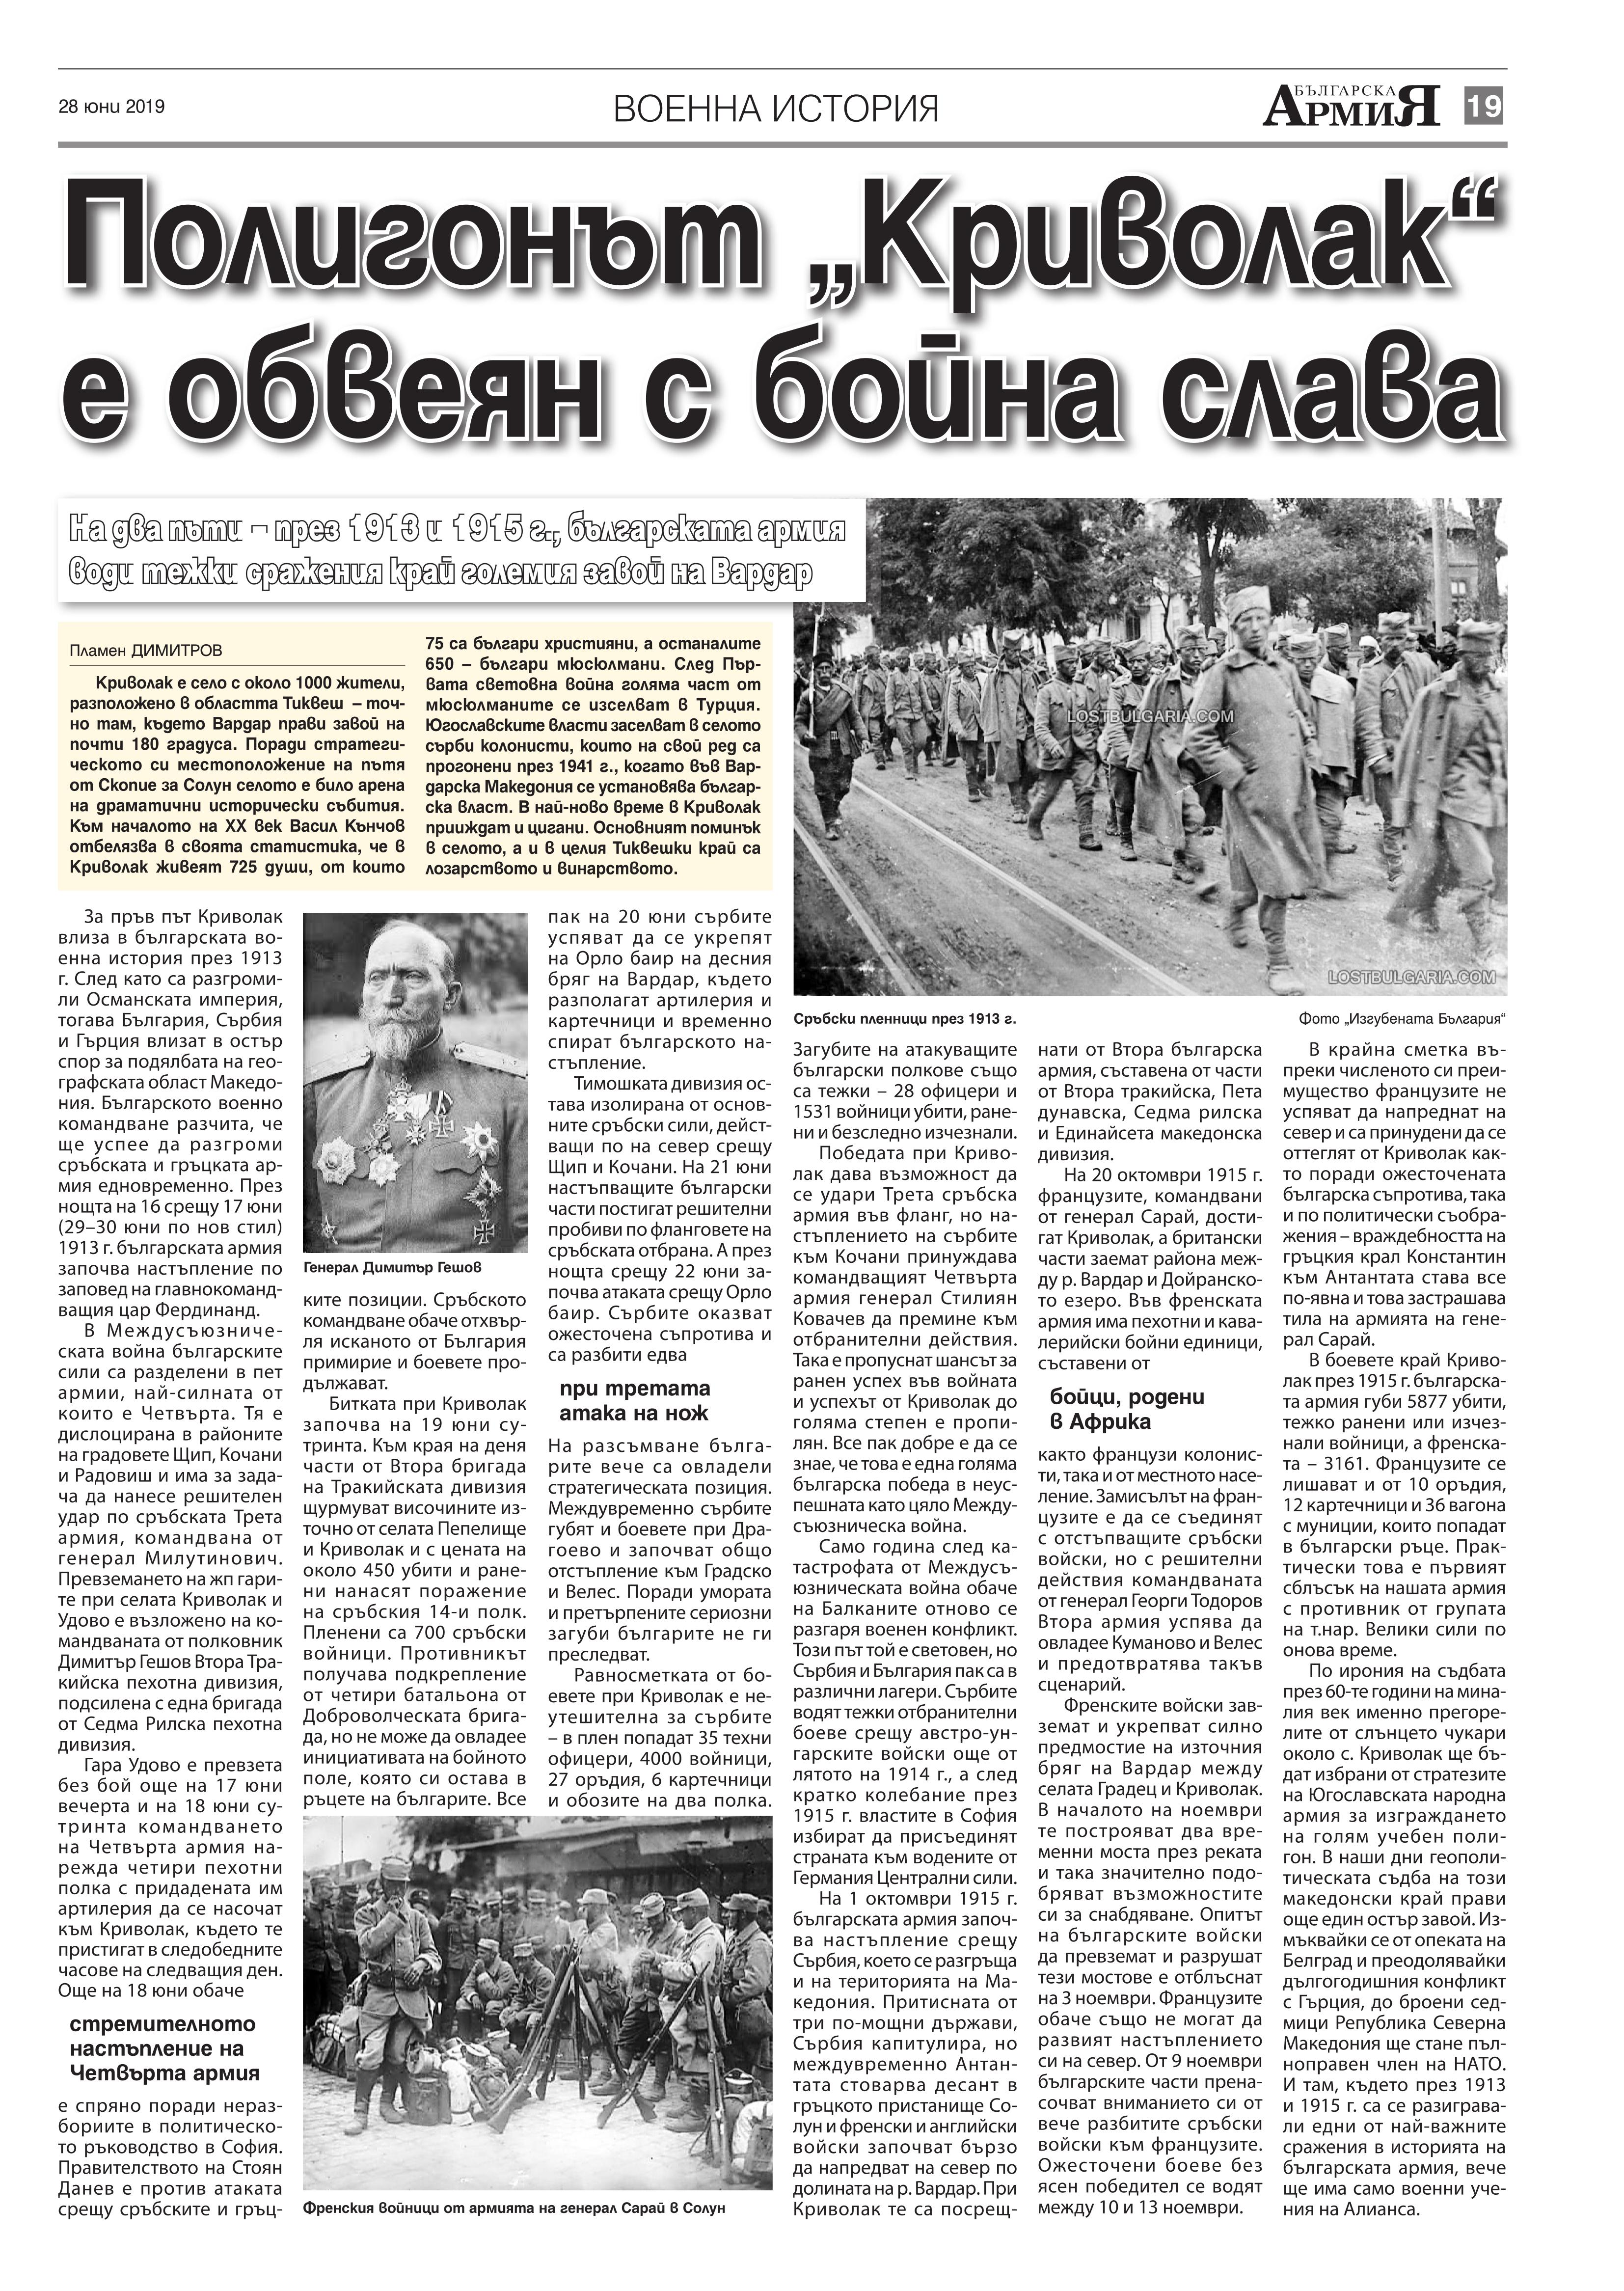 https://armymedia.bg/wp-content/uploads/2015/06/19.page1_-102.jpg